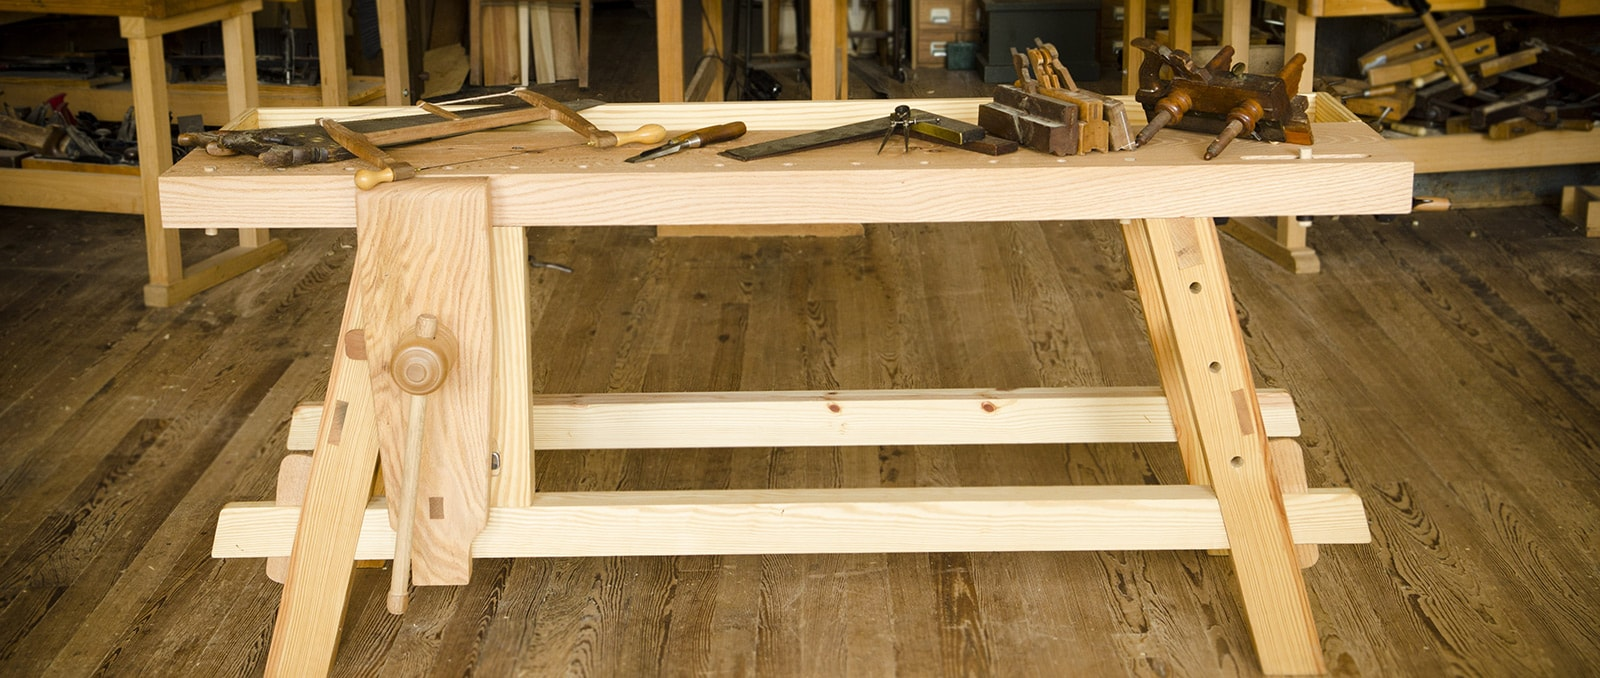 ... Guide to Woodworking Workbenches & Tool Storage (1/13) | Wood and Shop